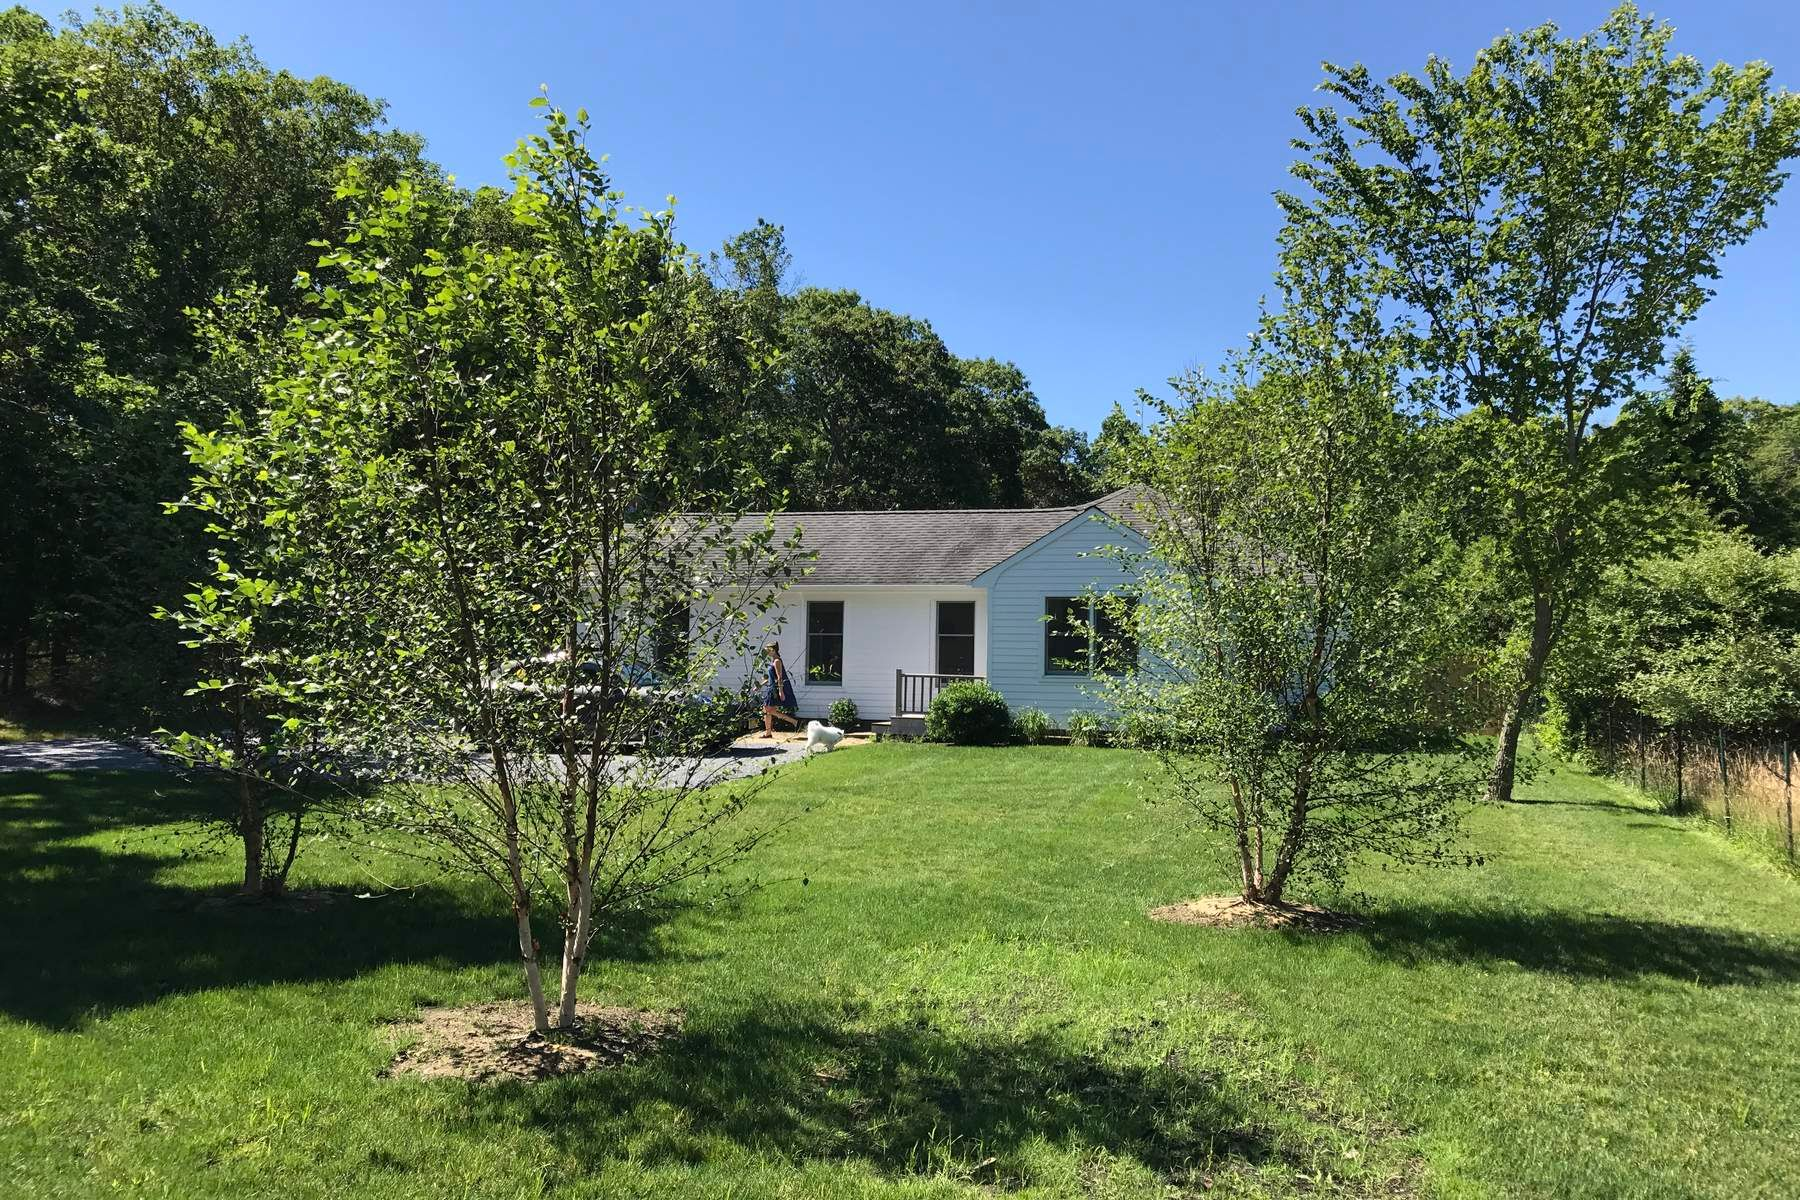 Single Family Home for Rent at Old Stone Compound 298 Old Stone Highway East Hampton, New York 11937 United States